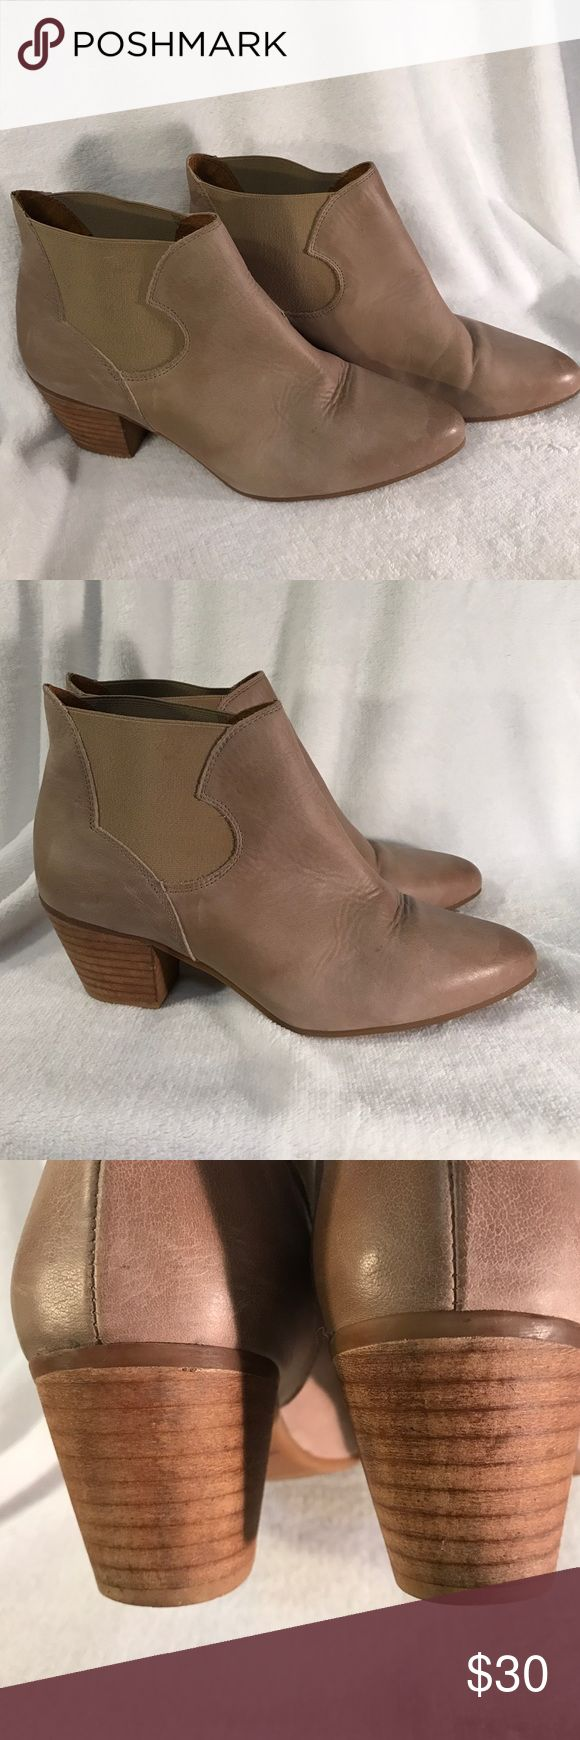 Tan or Nude Anthropologie Booties by Sixty Seven Great festival booties with a boho dress. Brand is Sixty Seven from Anthropologie. They are tan/nude and go with everything! Slip on with elastic side panels. Worn a few times and in excellent condition. Marked size 40, fit like a 9 1/2. Anthropologie Shoes Ankle Boots & Booties